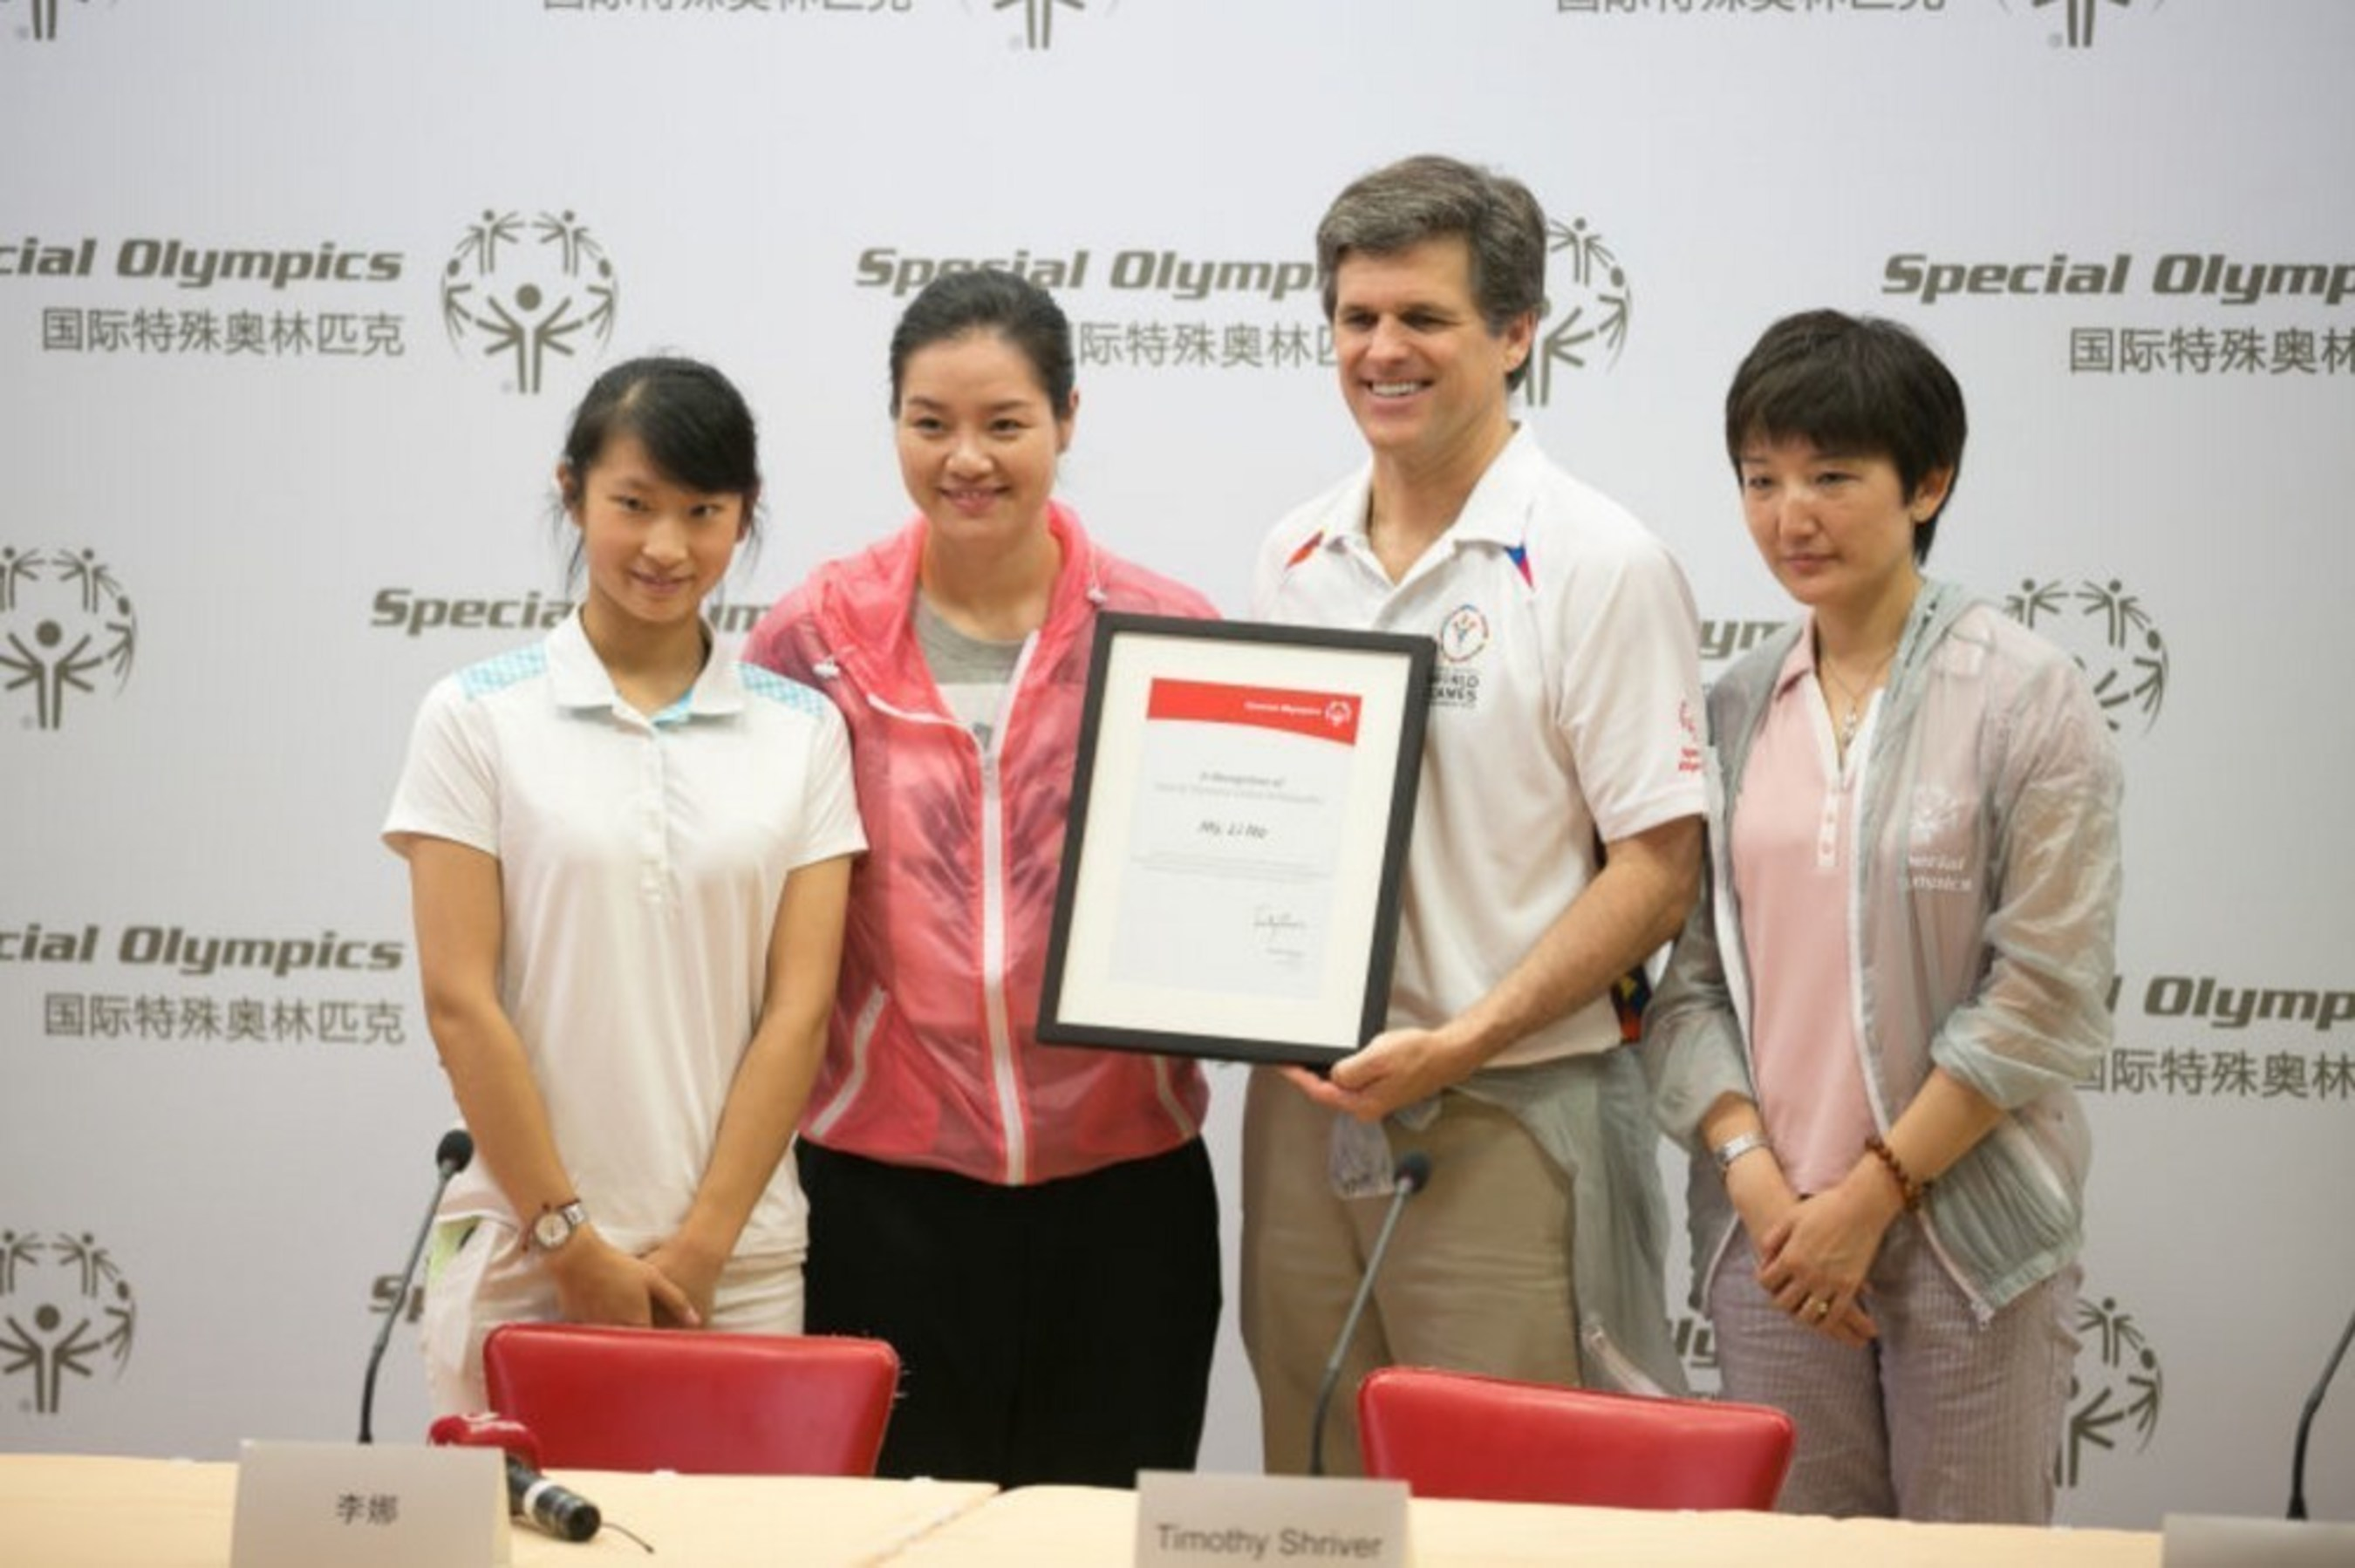 Dr. Timothy P. Shriver, Chairman of Special Olympics awarded Li Na with the official commissioning certificate of Global Ambassador